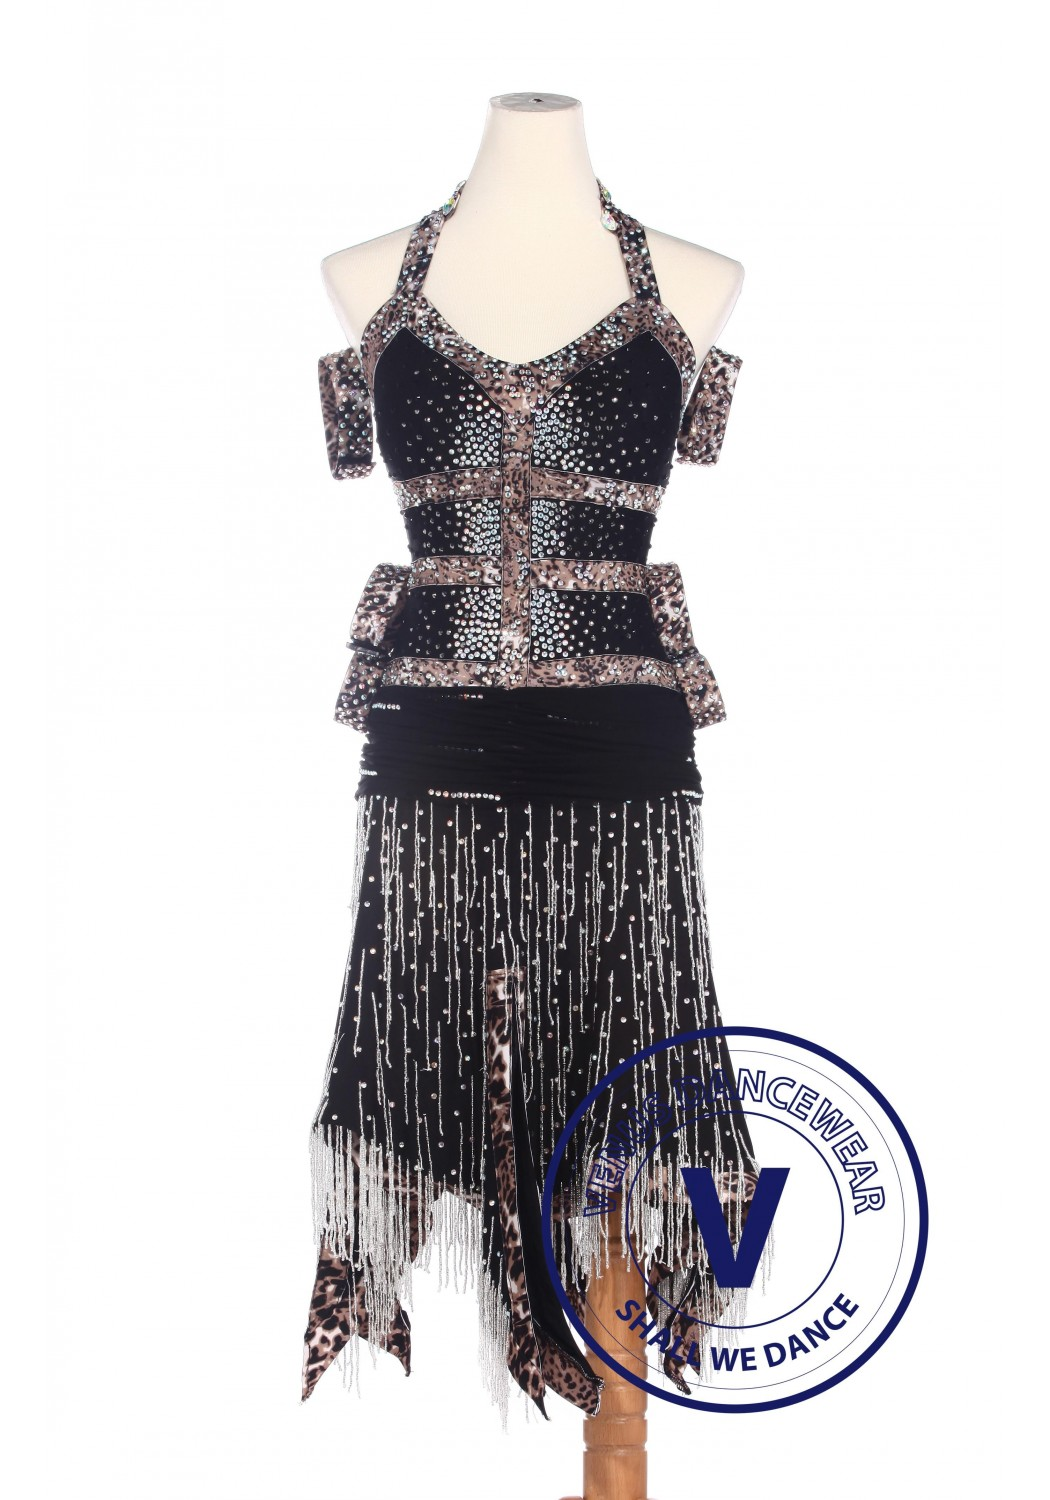 Black Elegant Latin Competition American Rhythm Salsa Rumba Dance Dress